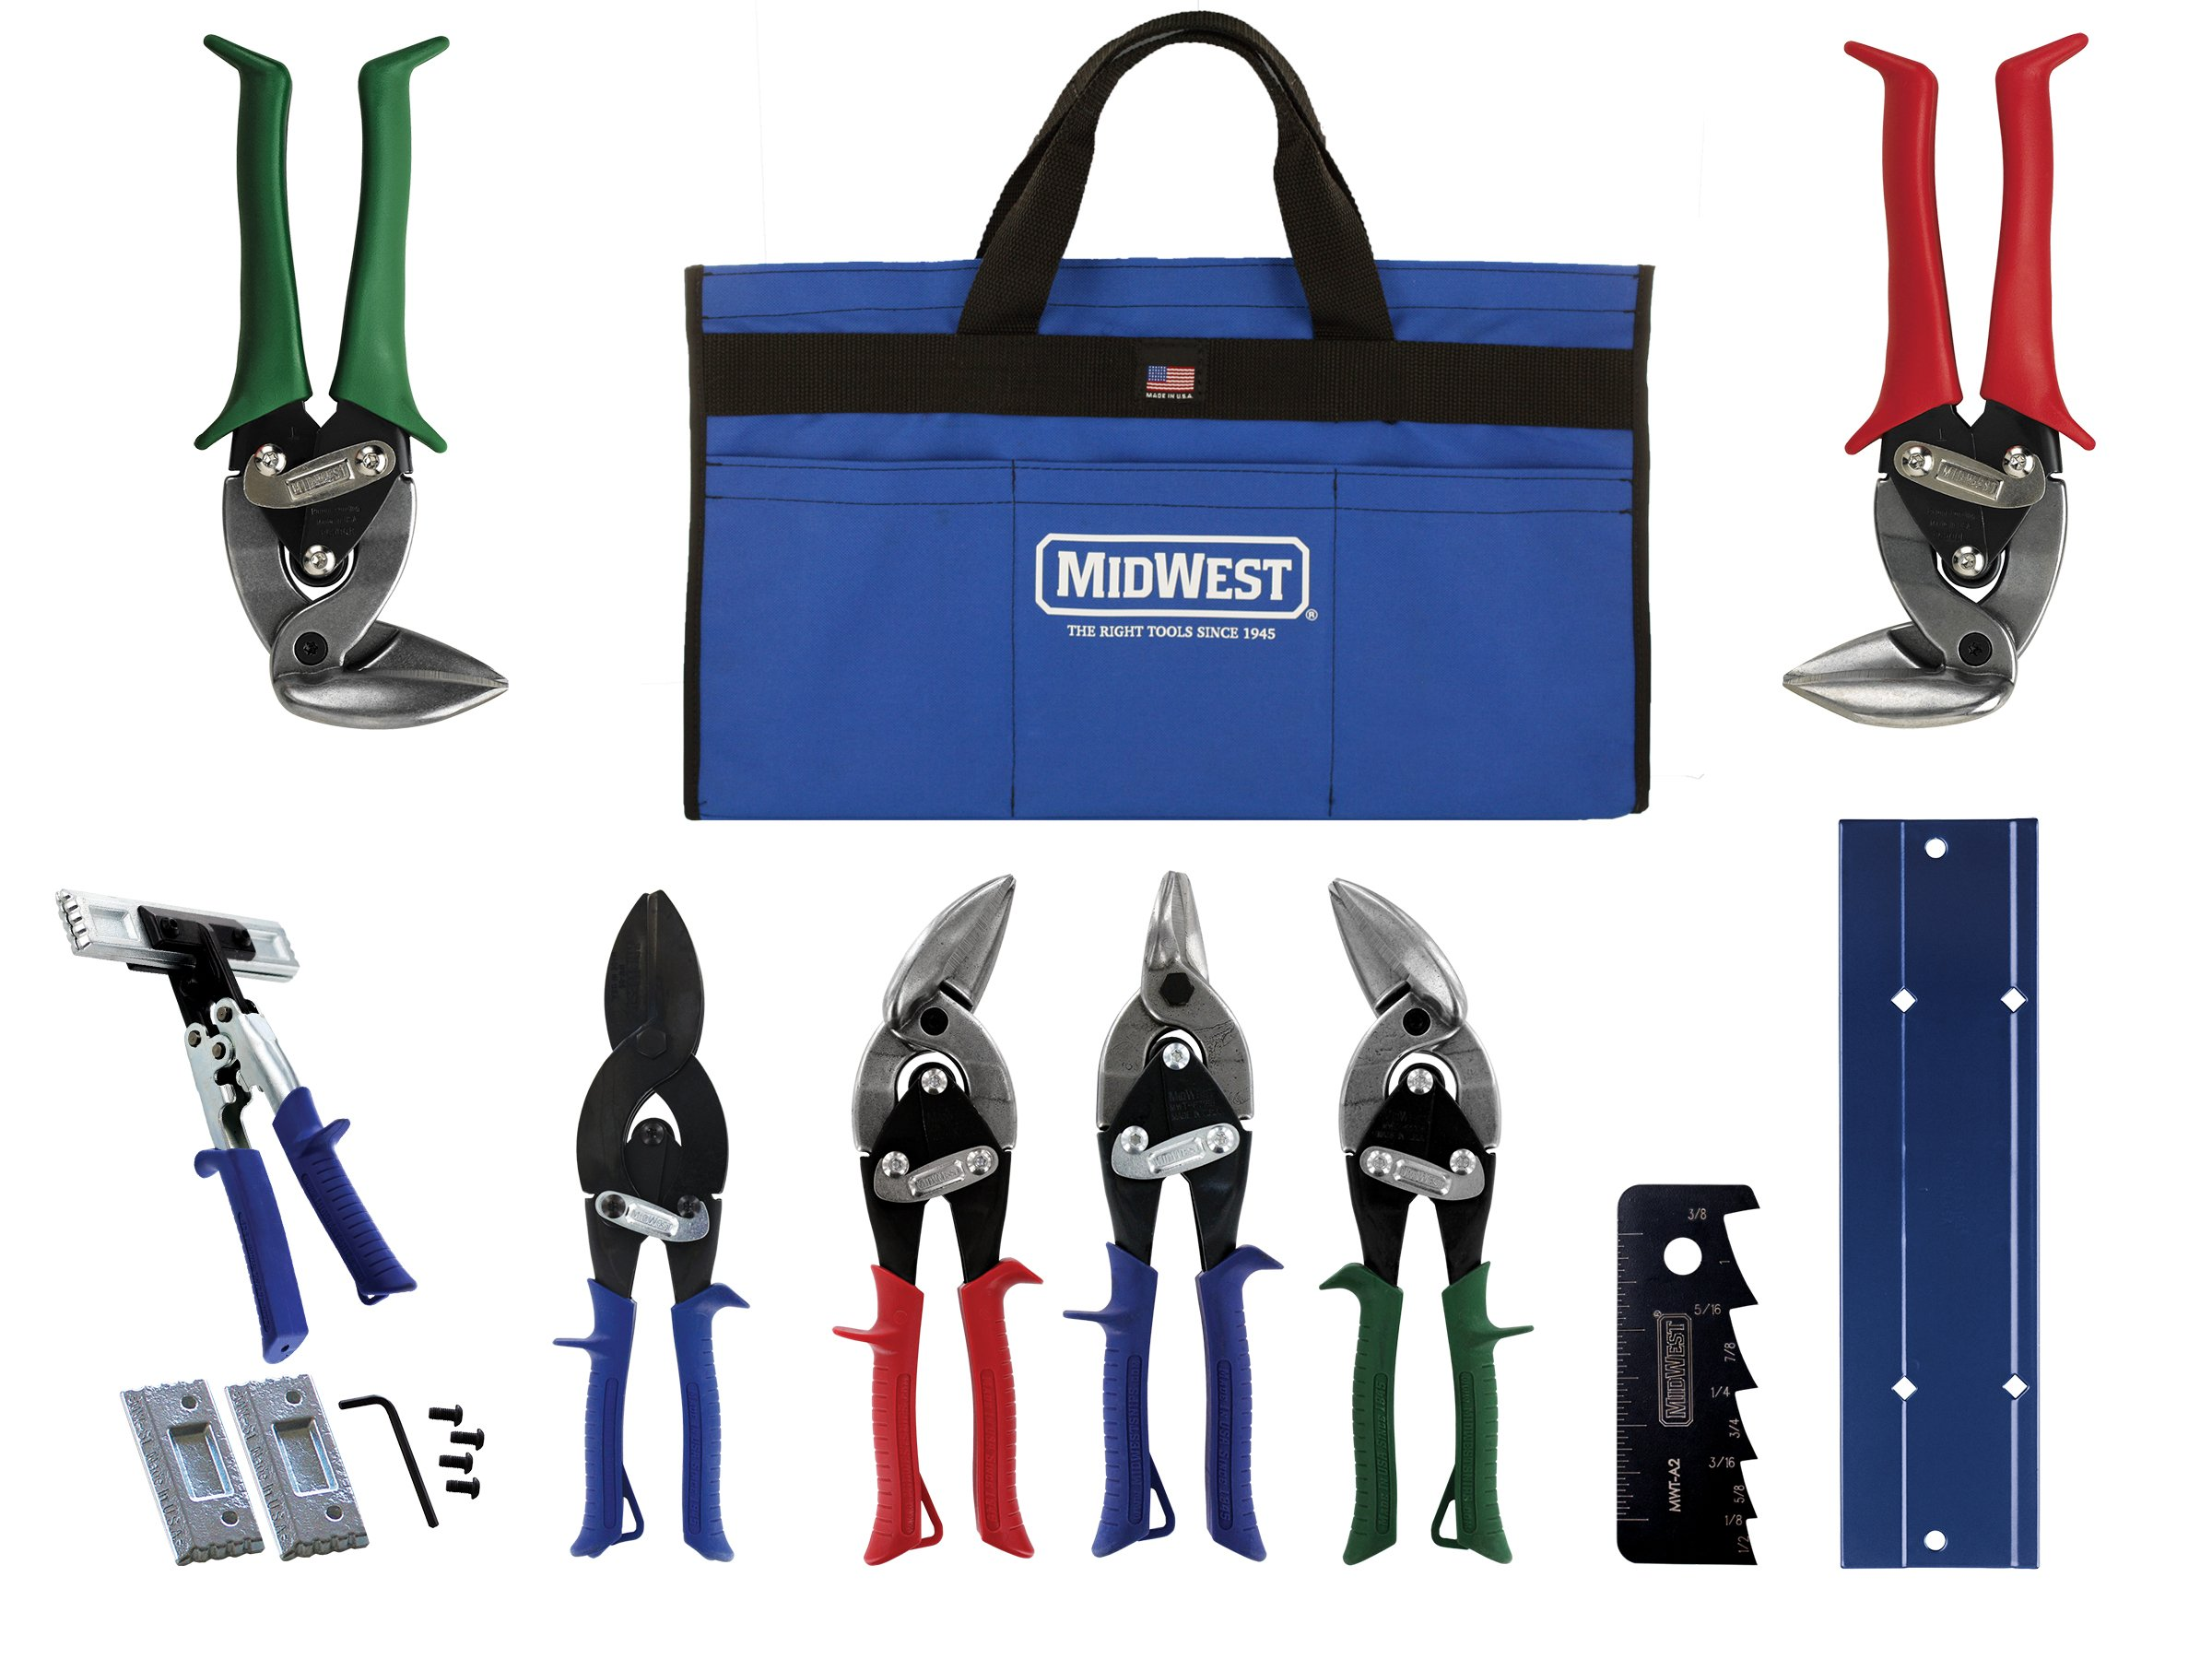 MIDWEST HVAC Tool Kit - 9 Piece Set Includes Aviation Snips with Metalworking Tools & Bag - MWT-HVACKIT03 by Midwest Tool & Cutlery (Image #1)